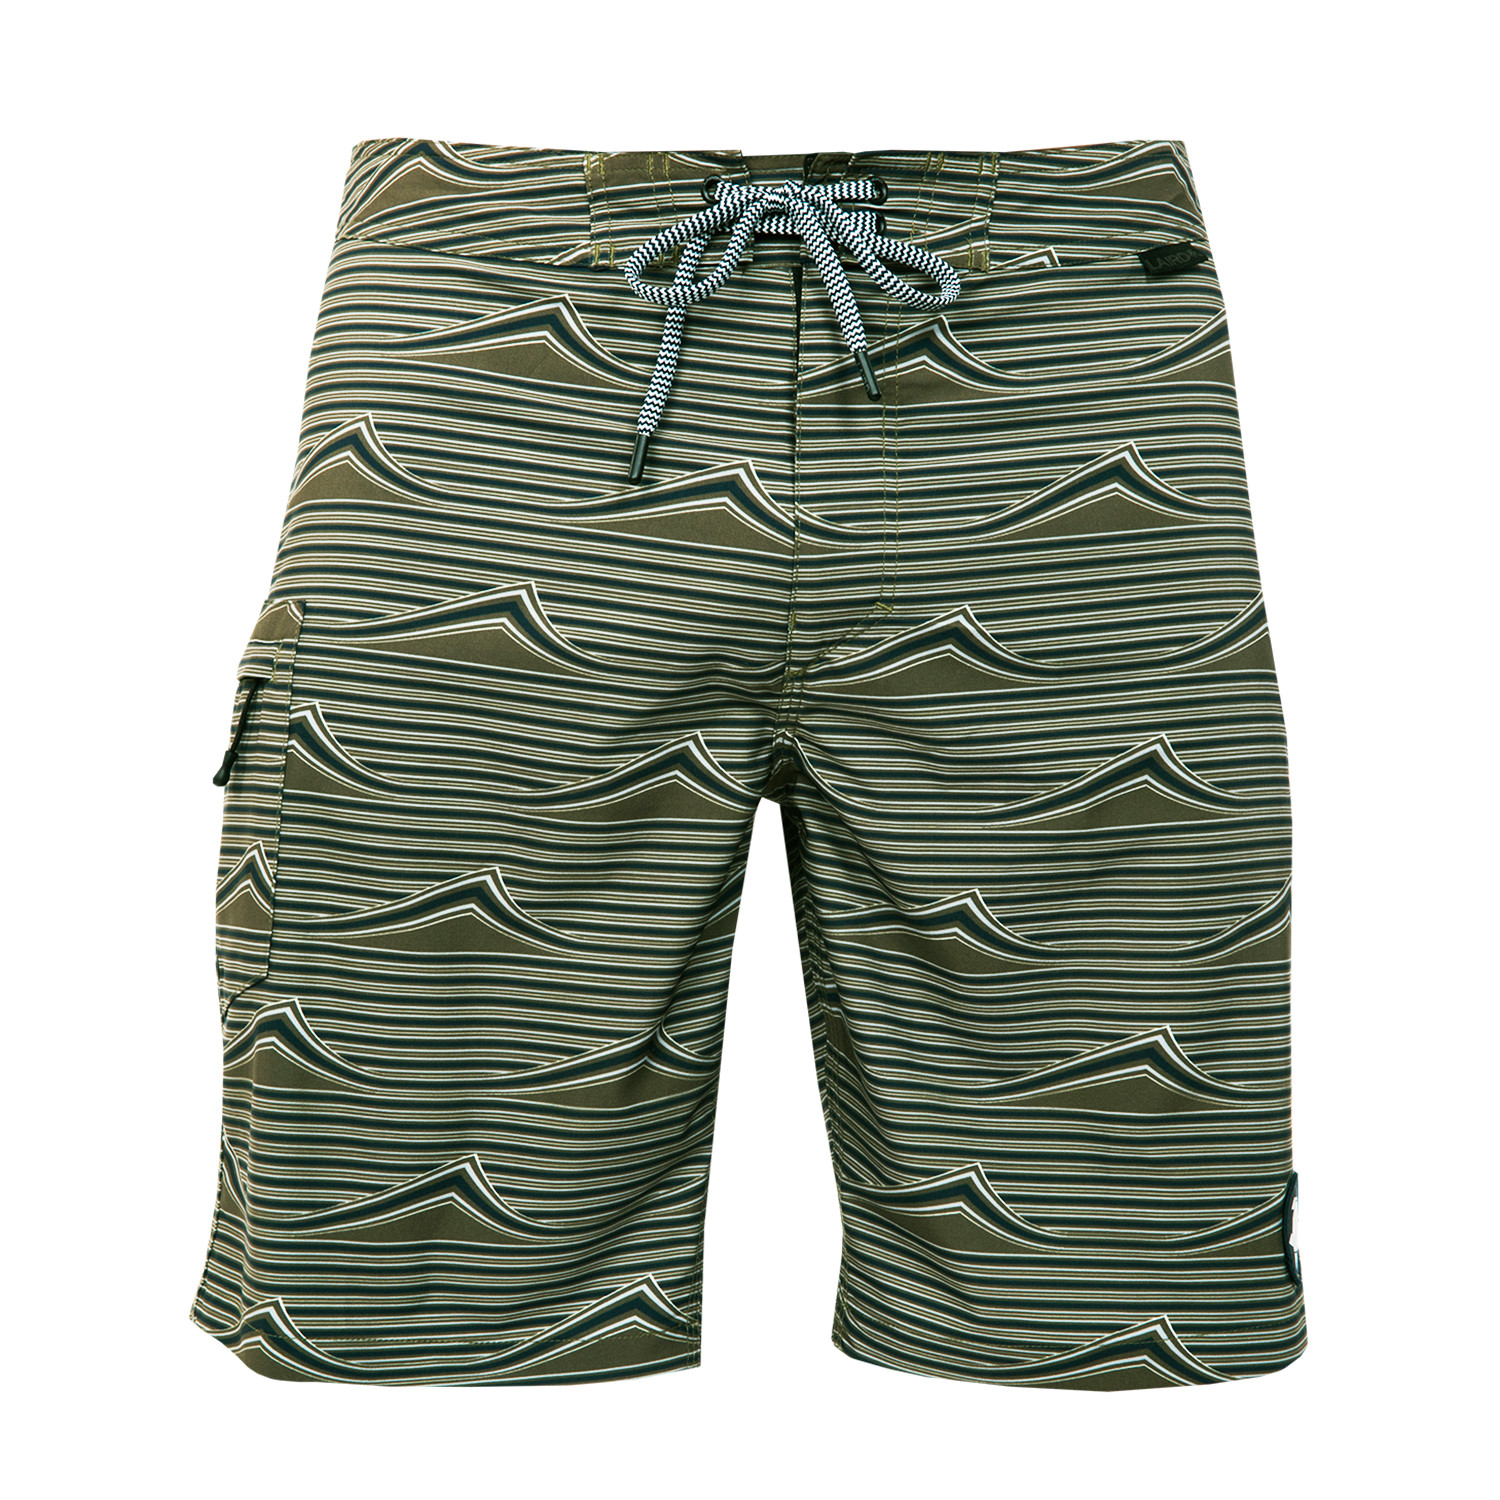 6c774de298 Performo Wave Boardshort // Olive (28) - Laird - Touch of Modern